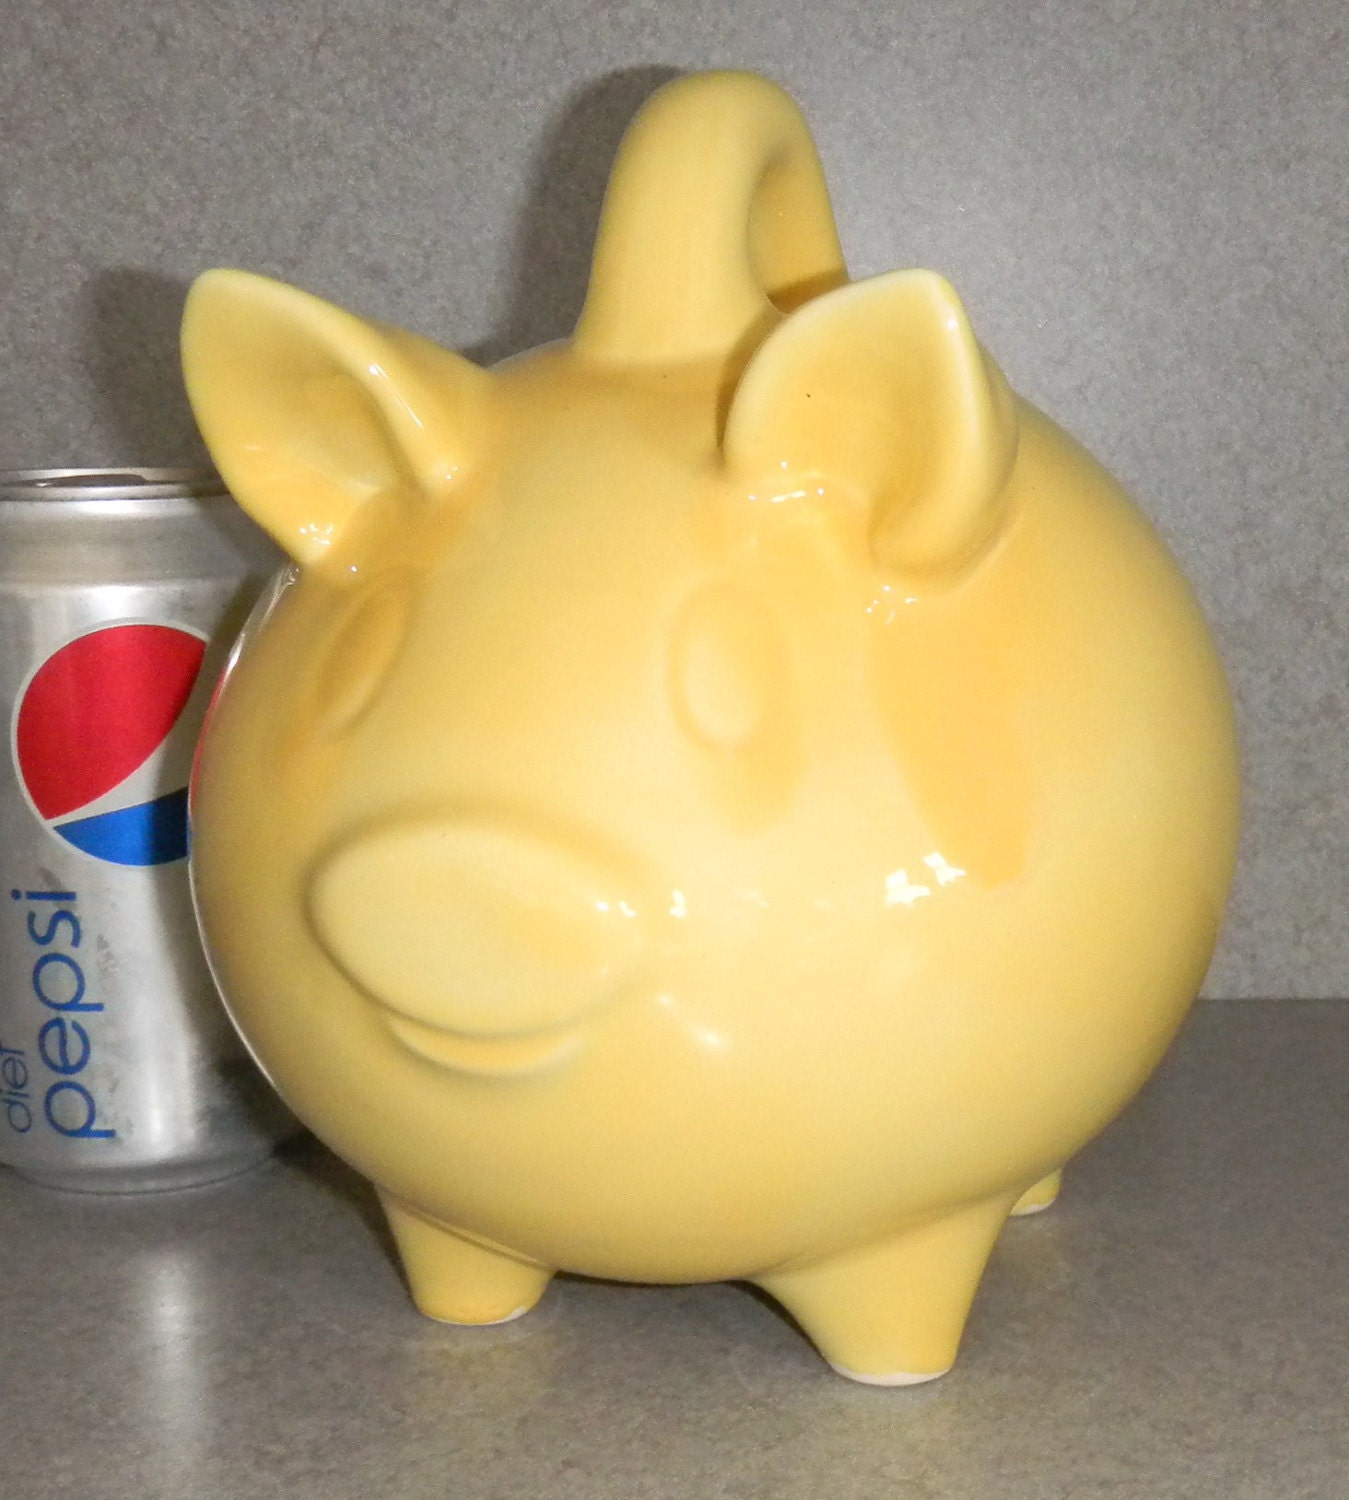 Sale Pig Bank Yellow Ceramic Piggy Bank With Stopper Ready To